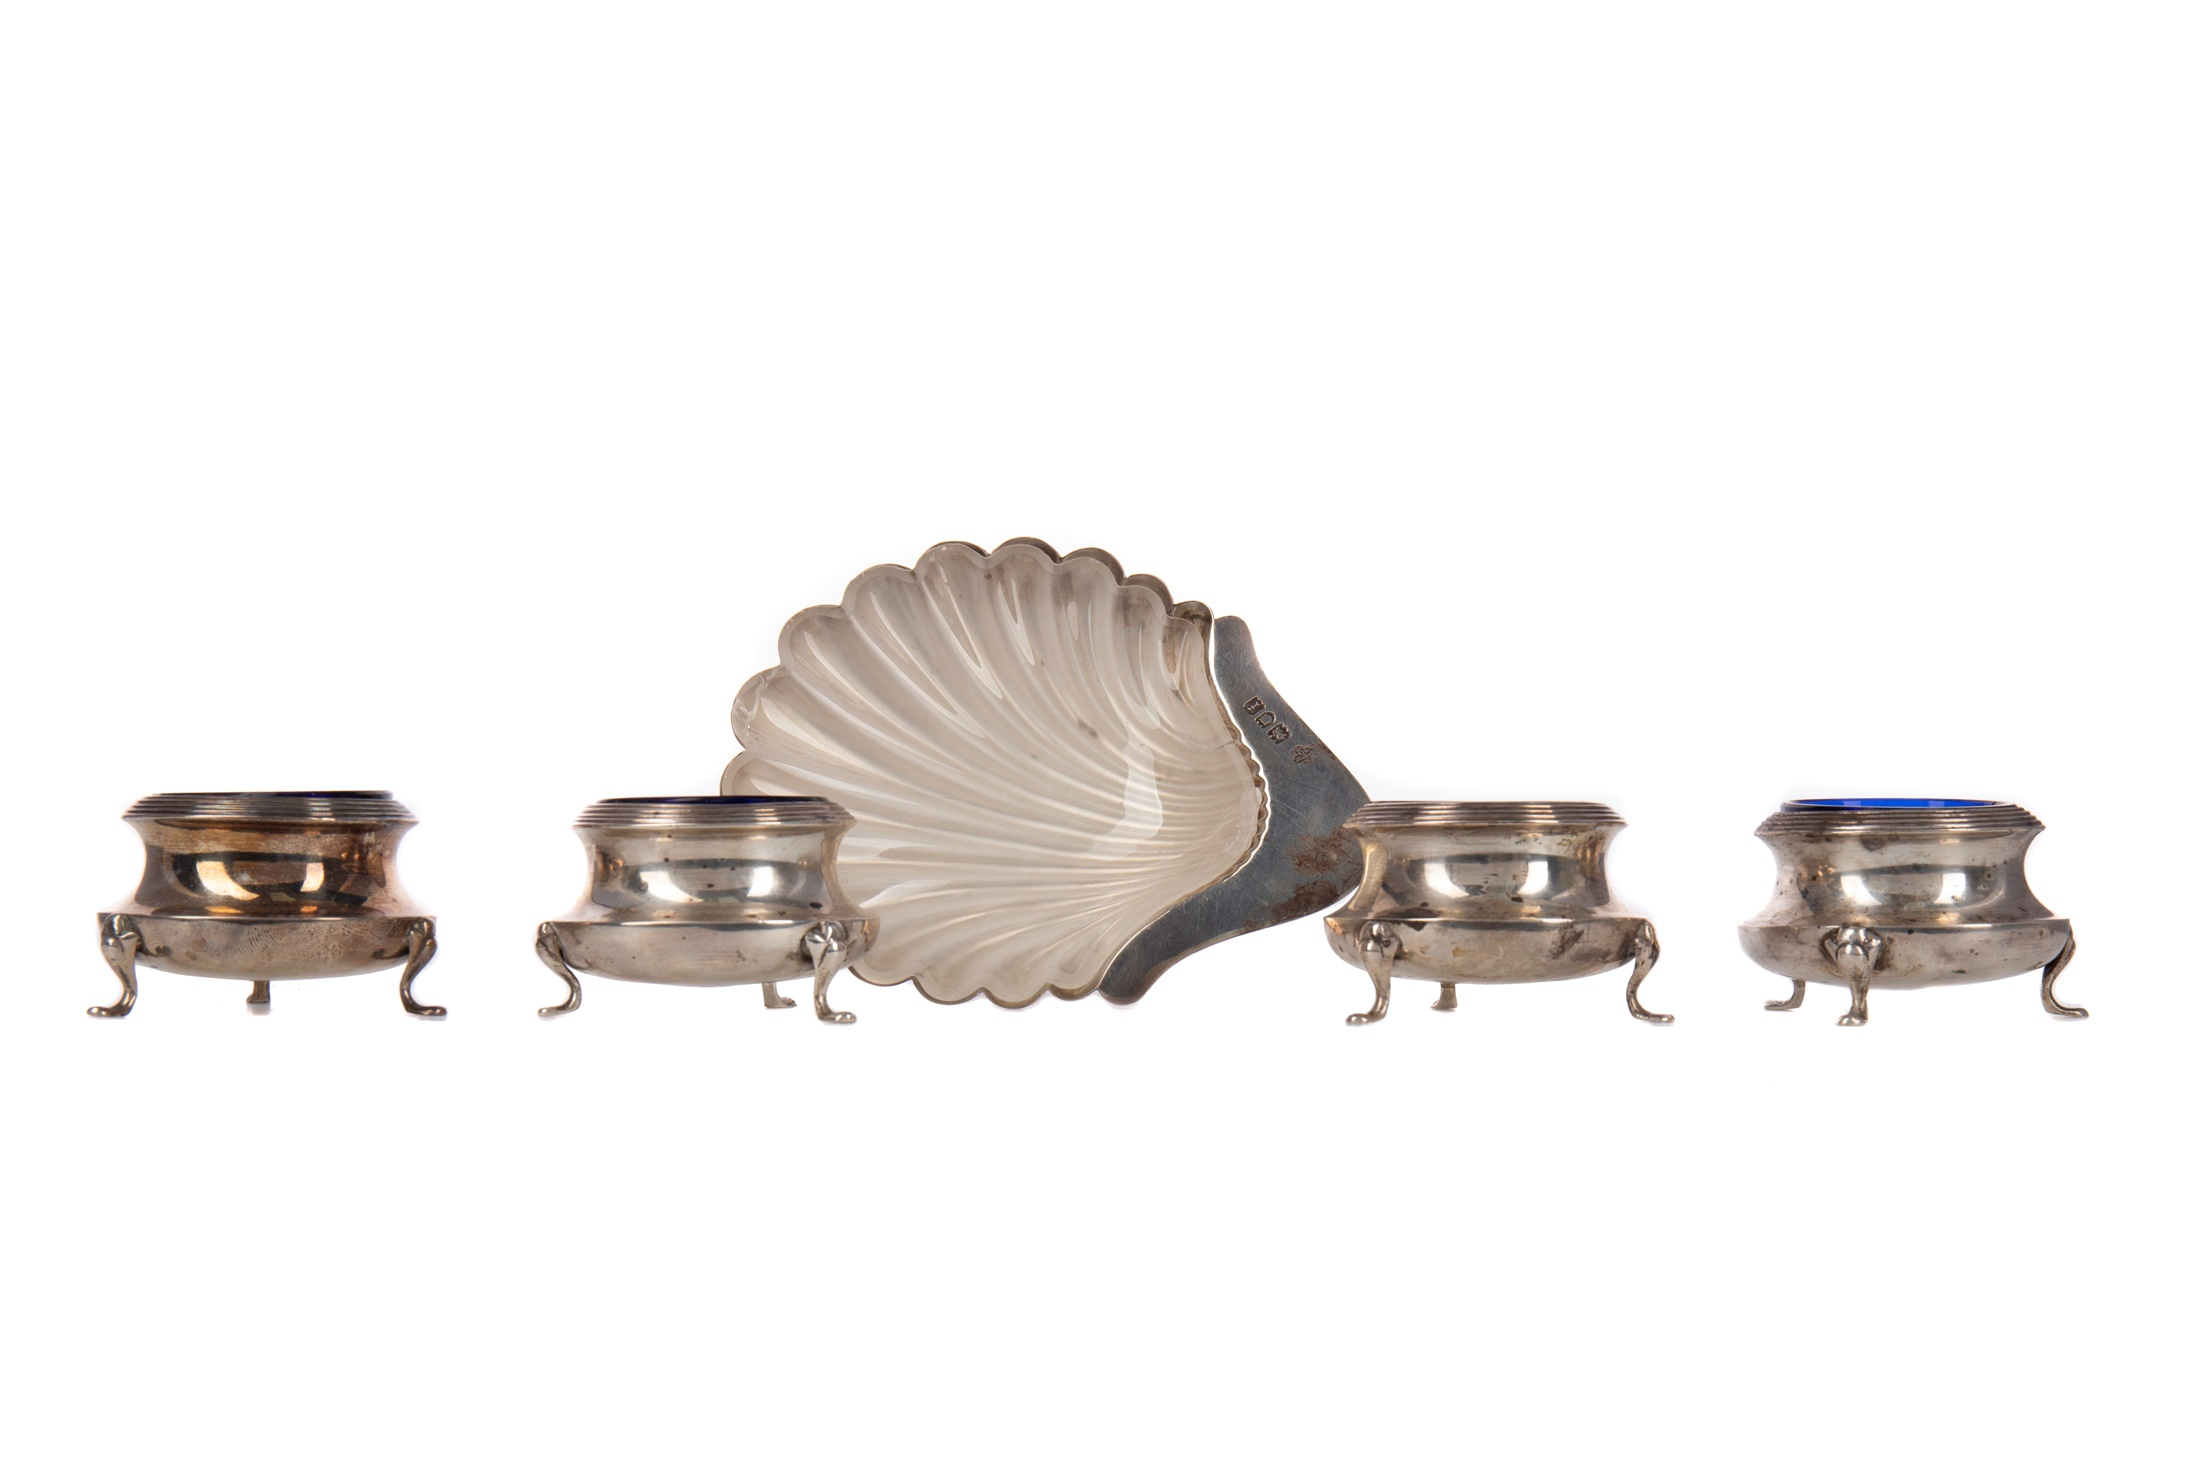 AN EDWARDIAN SILVER BUTTER DISH, ALONG WITH FOUR OPEN SALTS